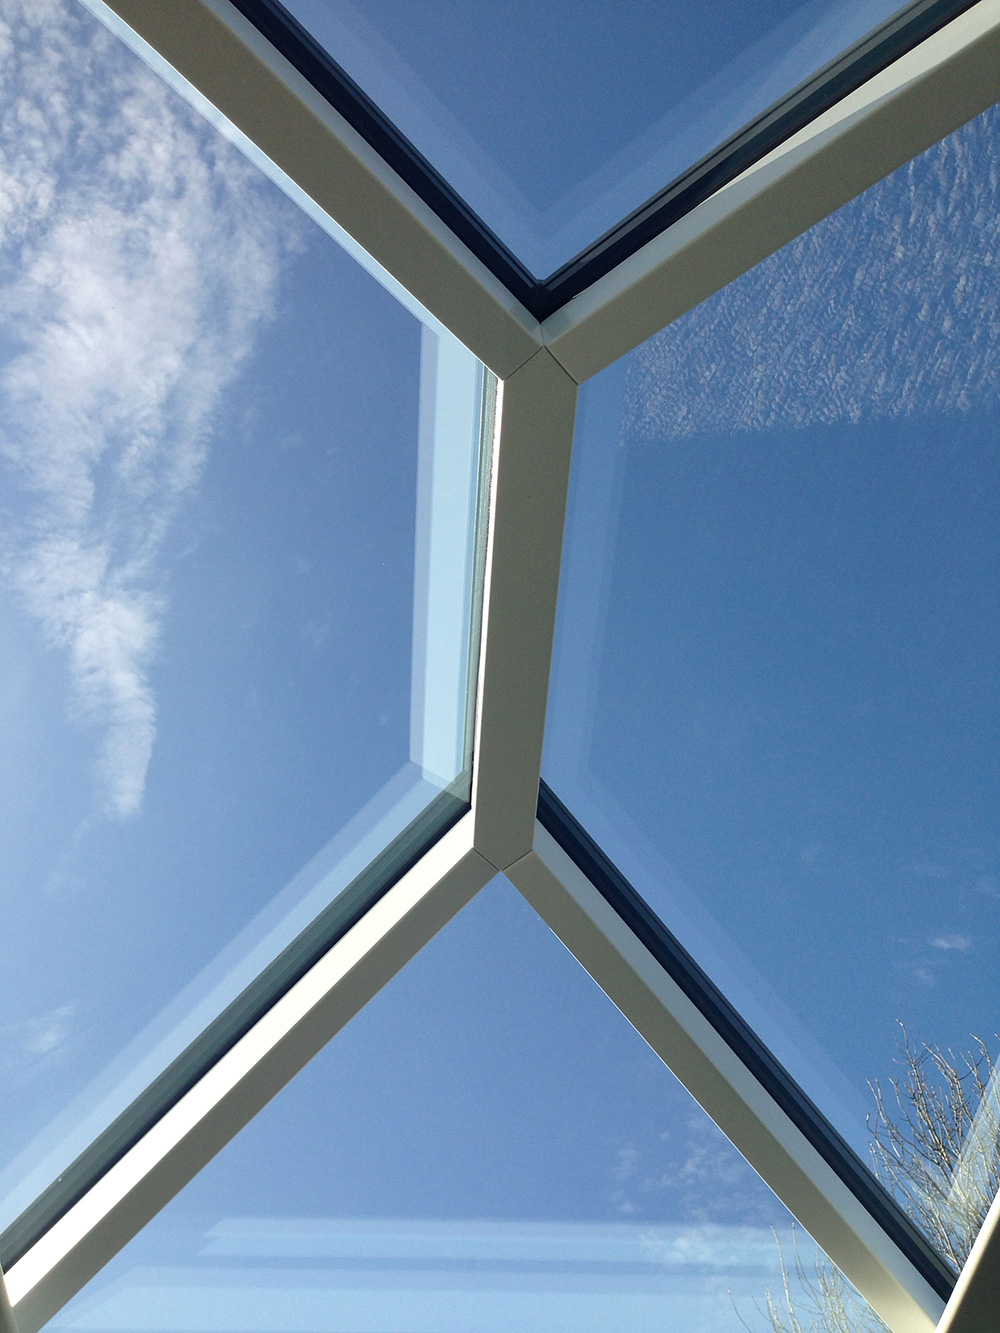 Roof lantern measuring 1500mm x 1000mm